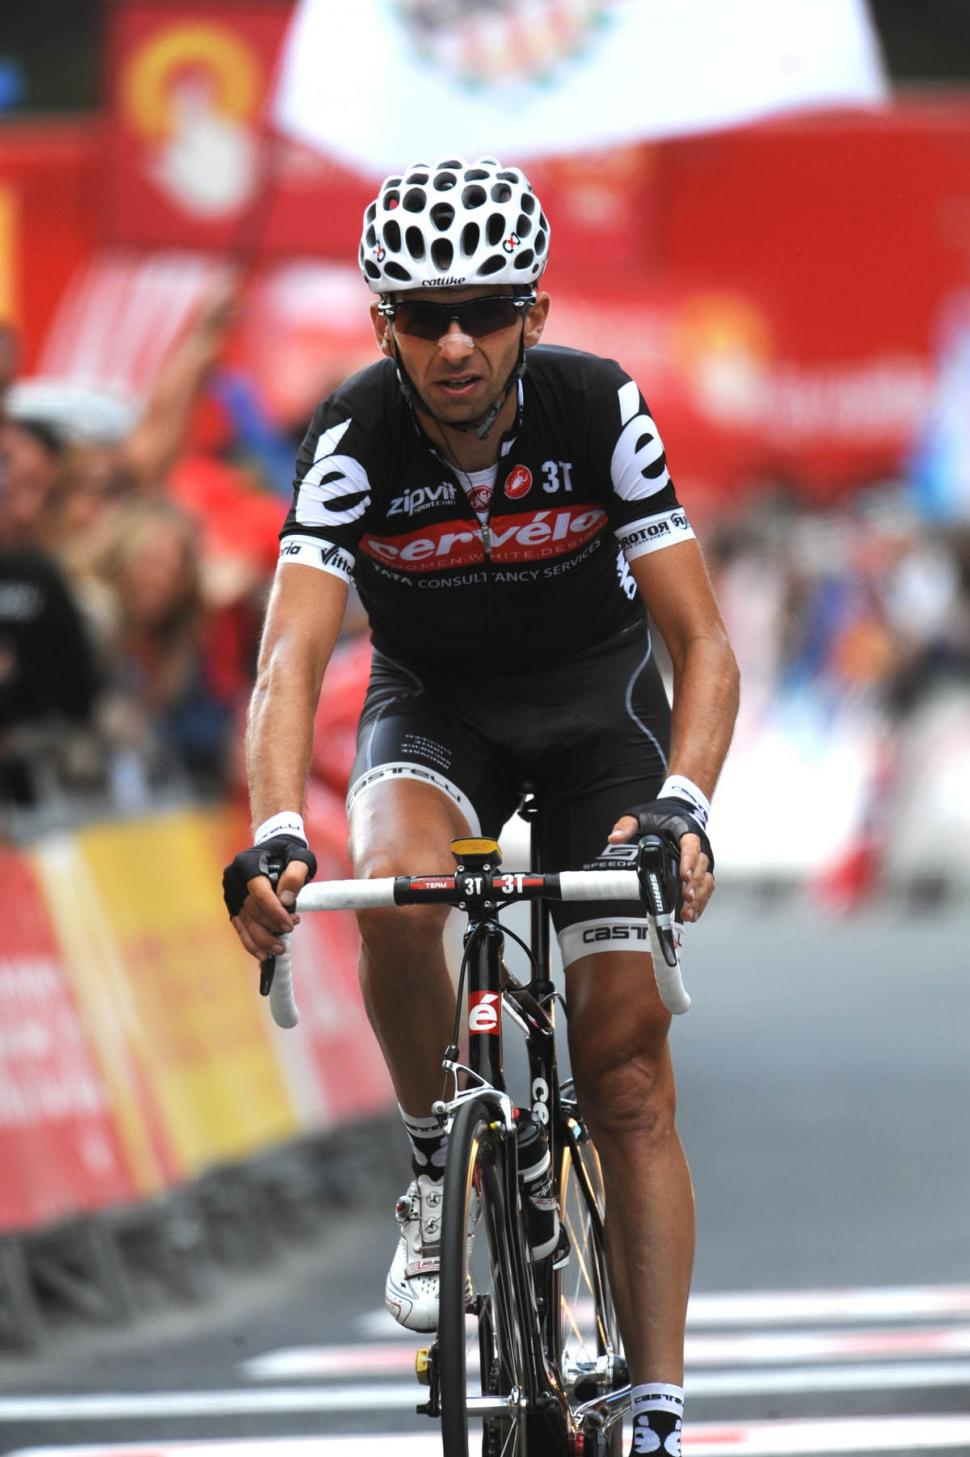 Xavier Tondo takes 3rd in Stage 11 of the 2010 Vuelta (copyright Unipublic:Graham Watson)